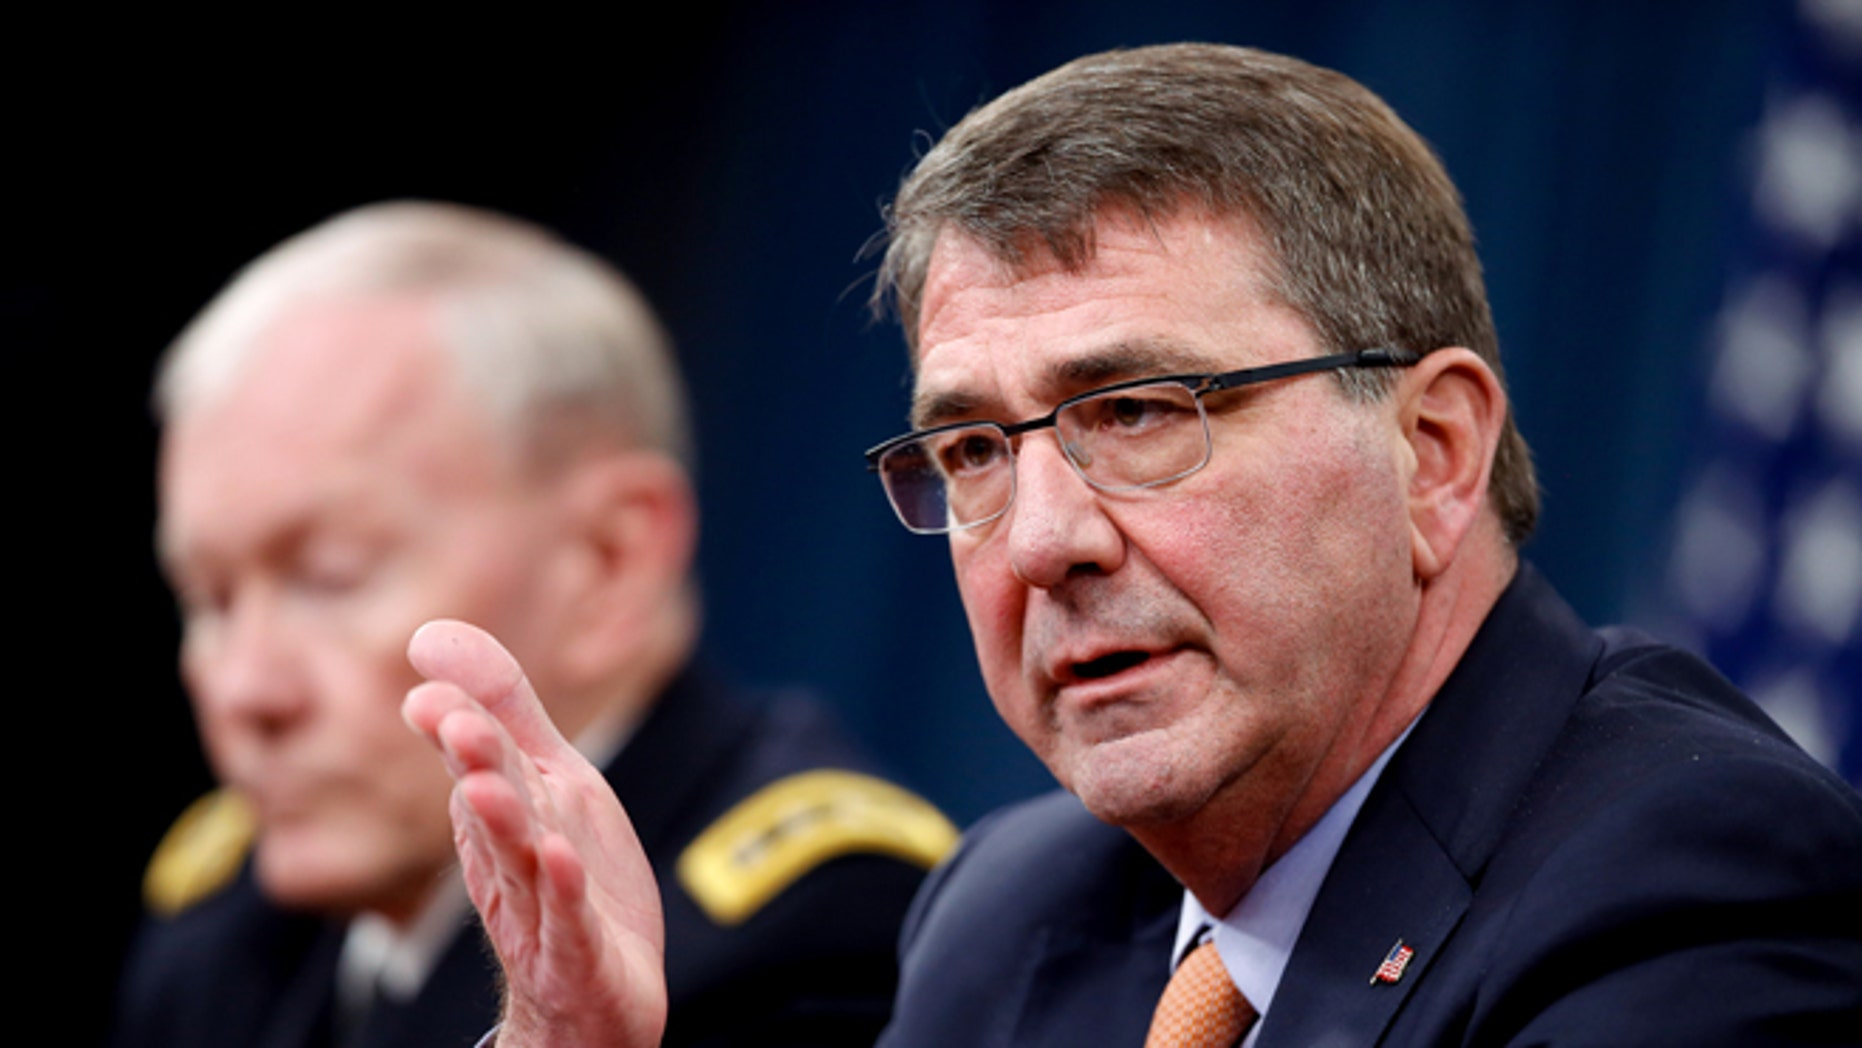 April 16, 2015: Defense Secretary Ash Carter, right, accompanied by Joint Chiefs Chairman Gen. Martin Dempsey, speaks during a news conference at the Pentagon.